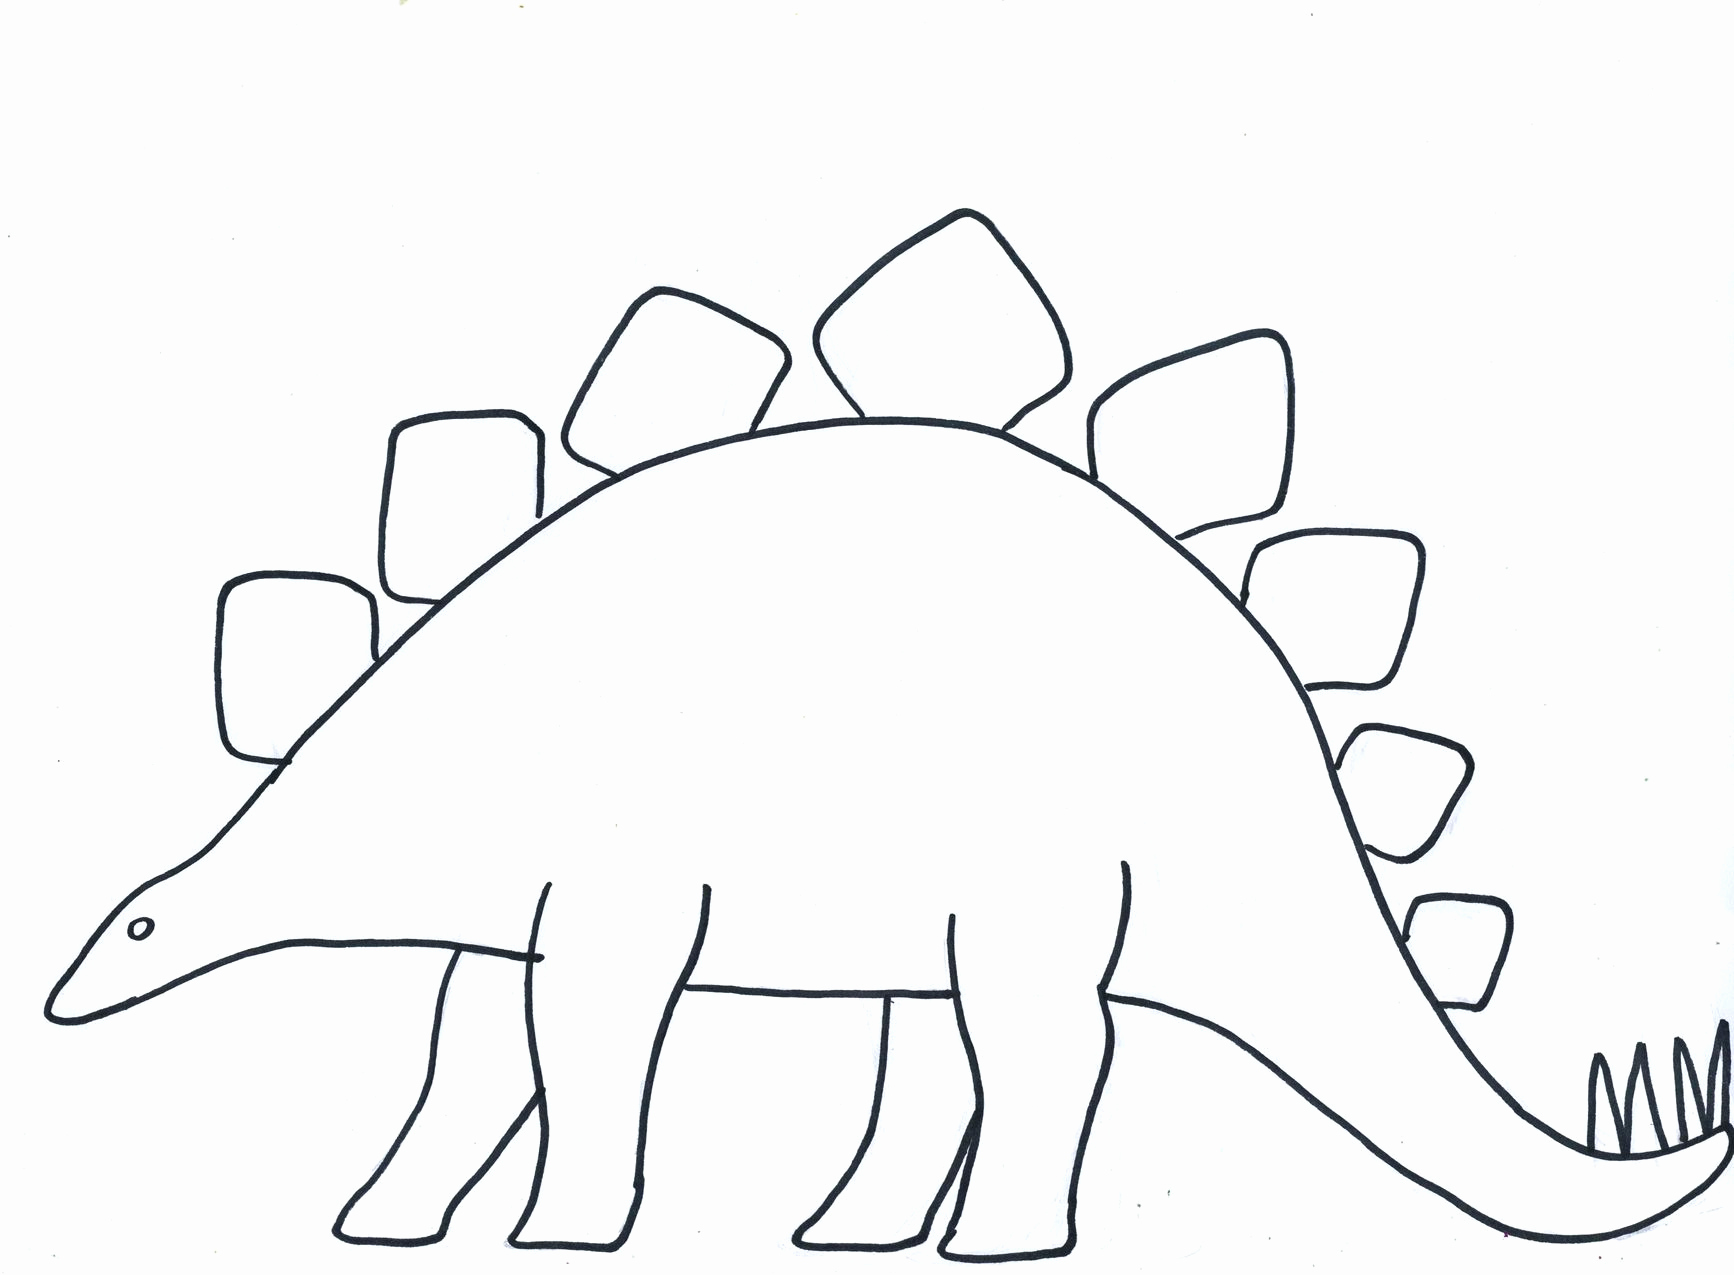 Paper Cut Outs Templates Elegant Blank Dinosaur Template